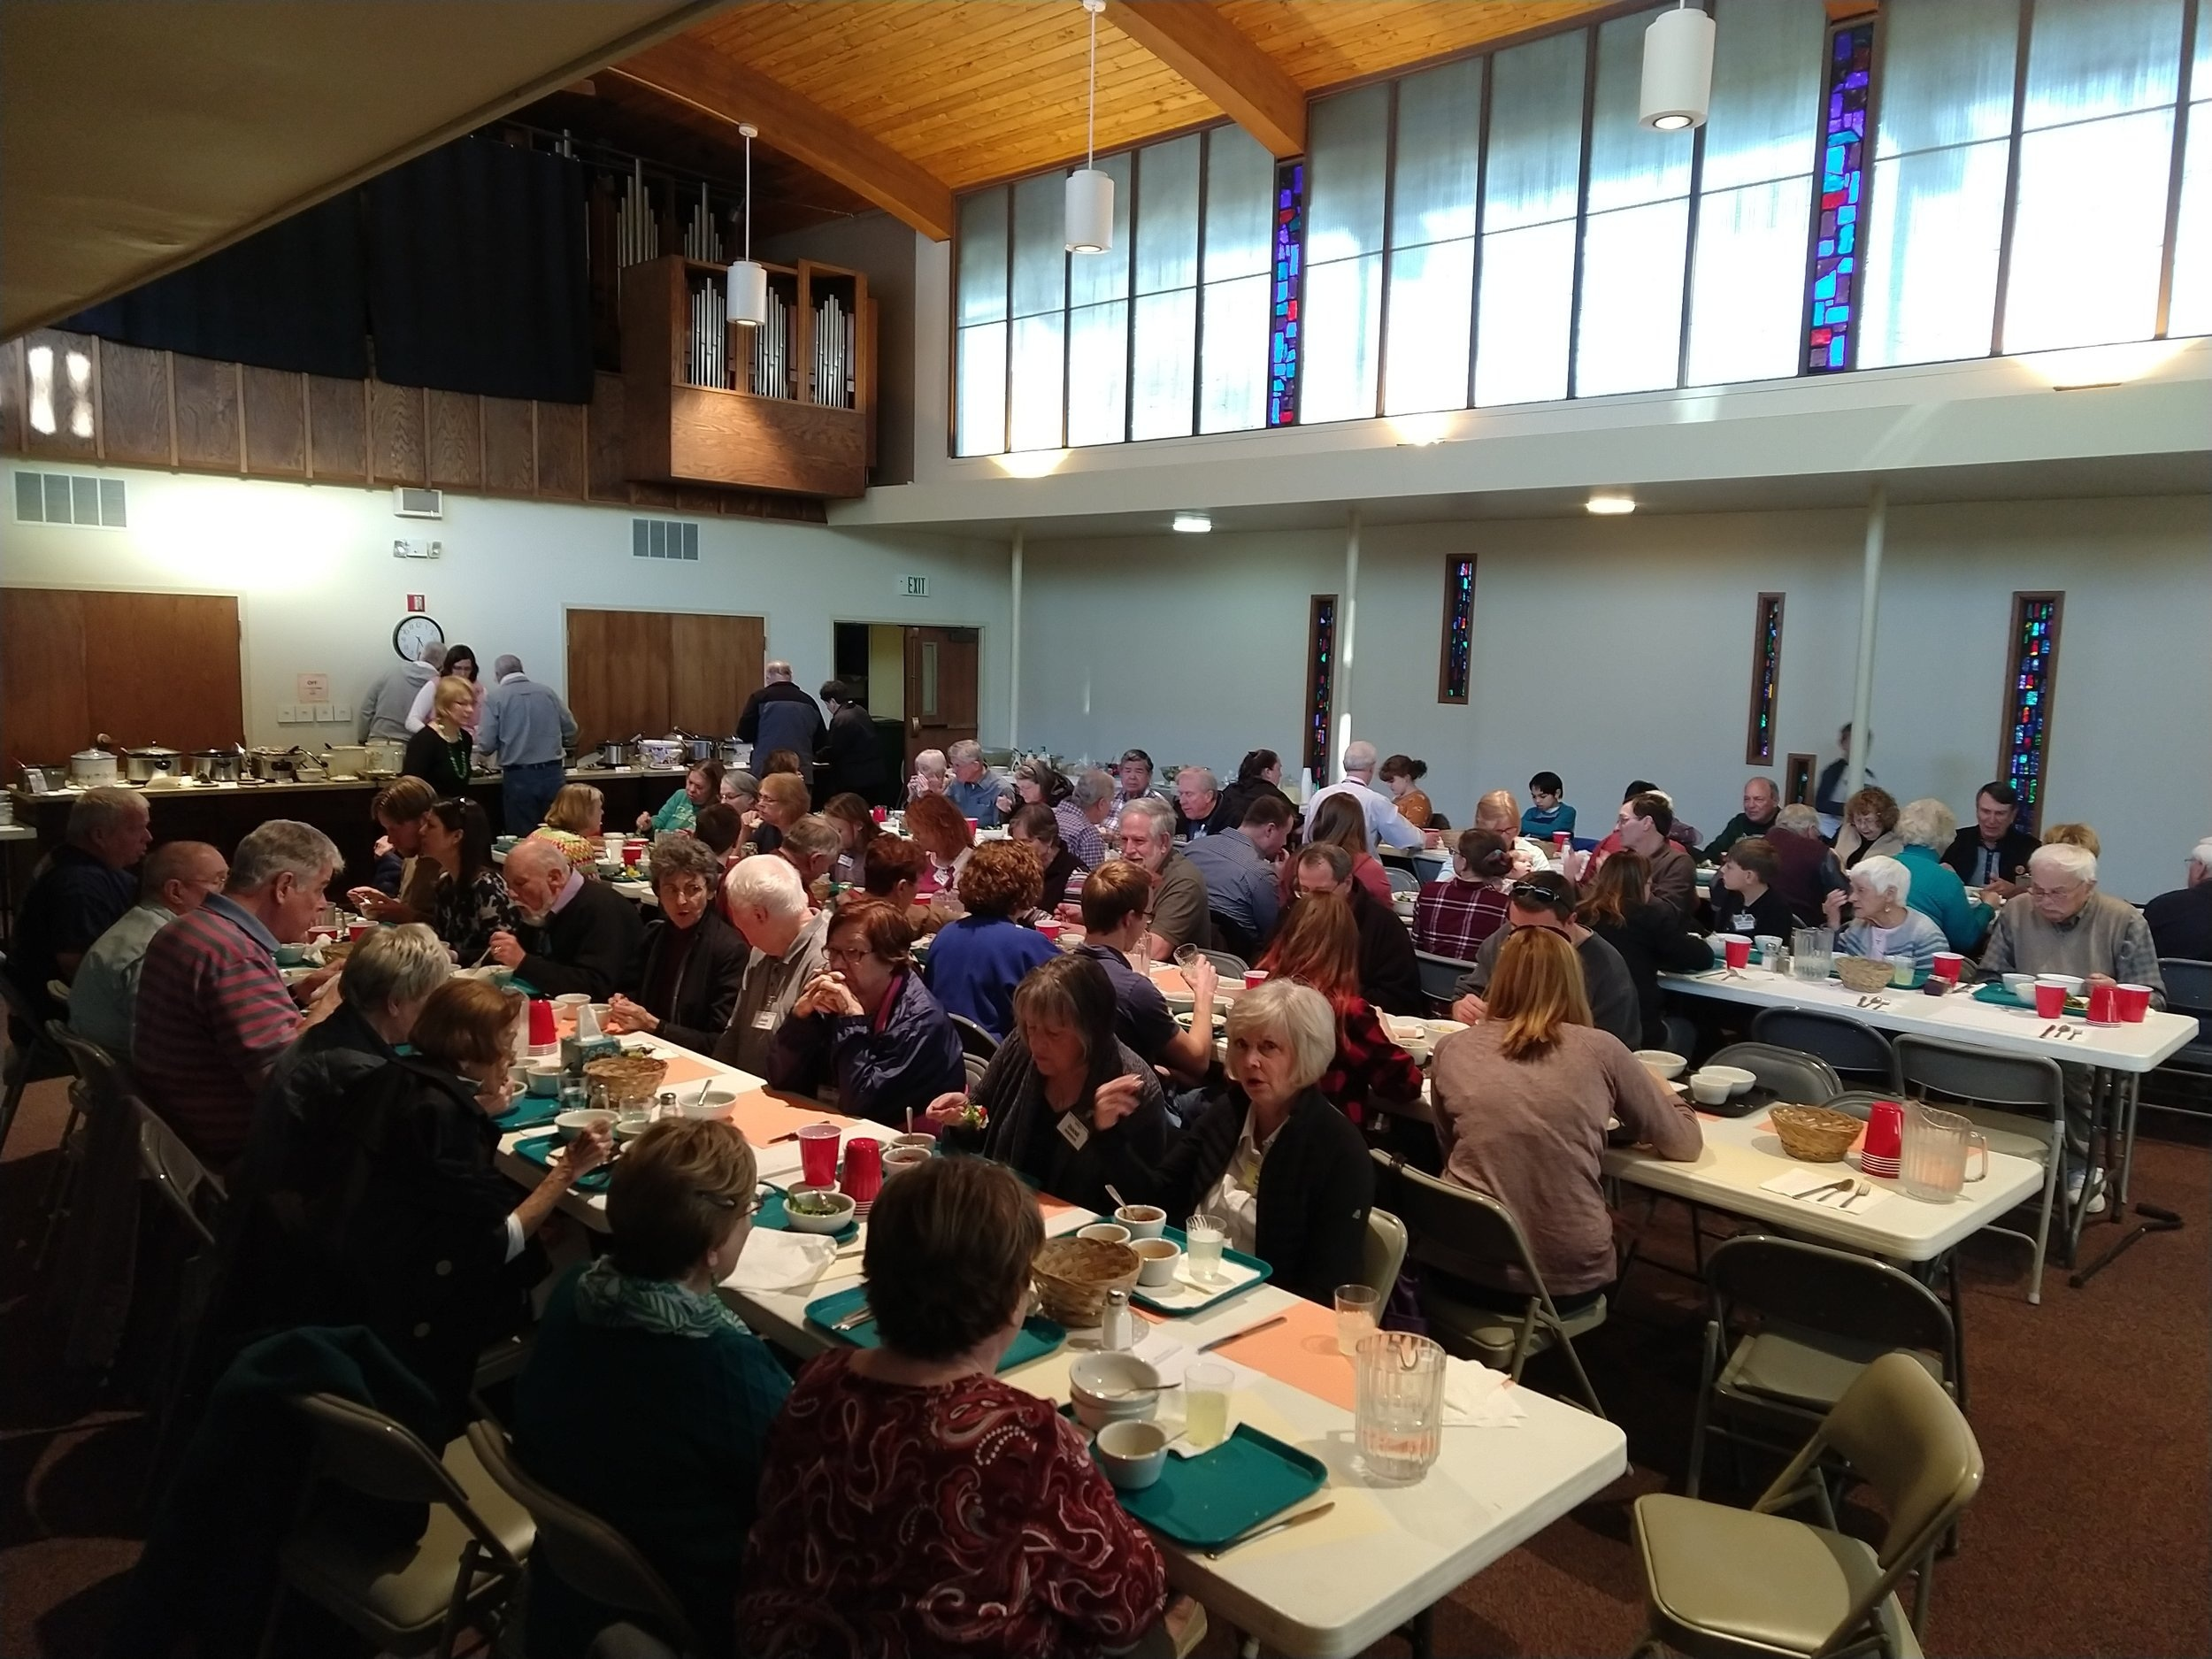 Lenten Soup Suppers - Wednesday Lenten and Soup Suppers followed by presentation/discussion, or worship have been a tradition at St. Michael's for many years.